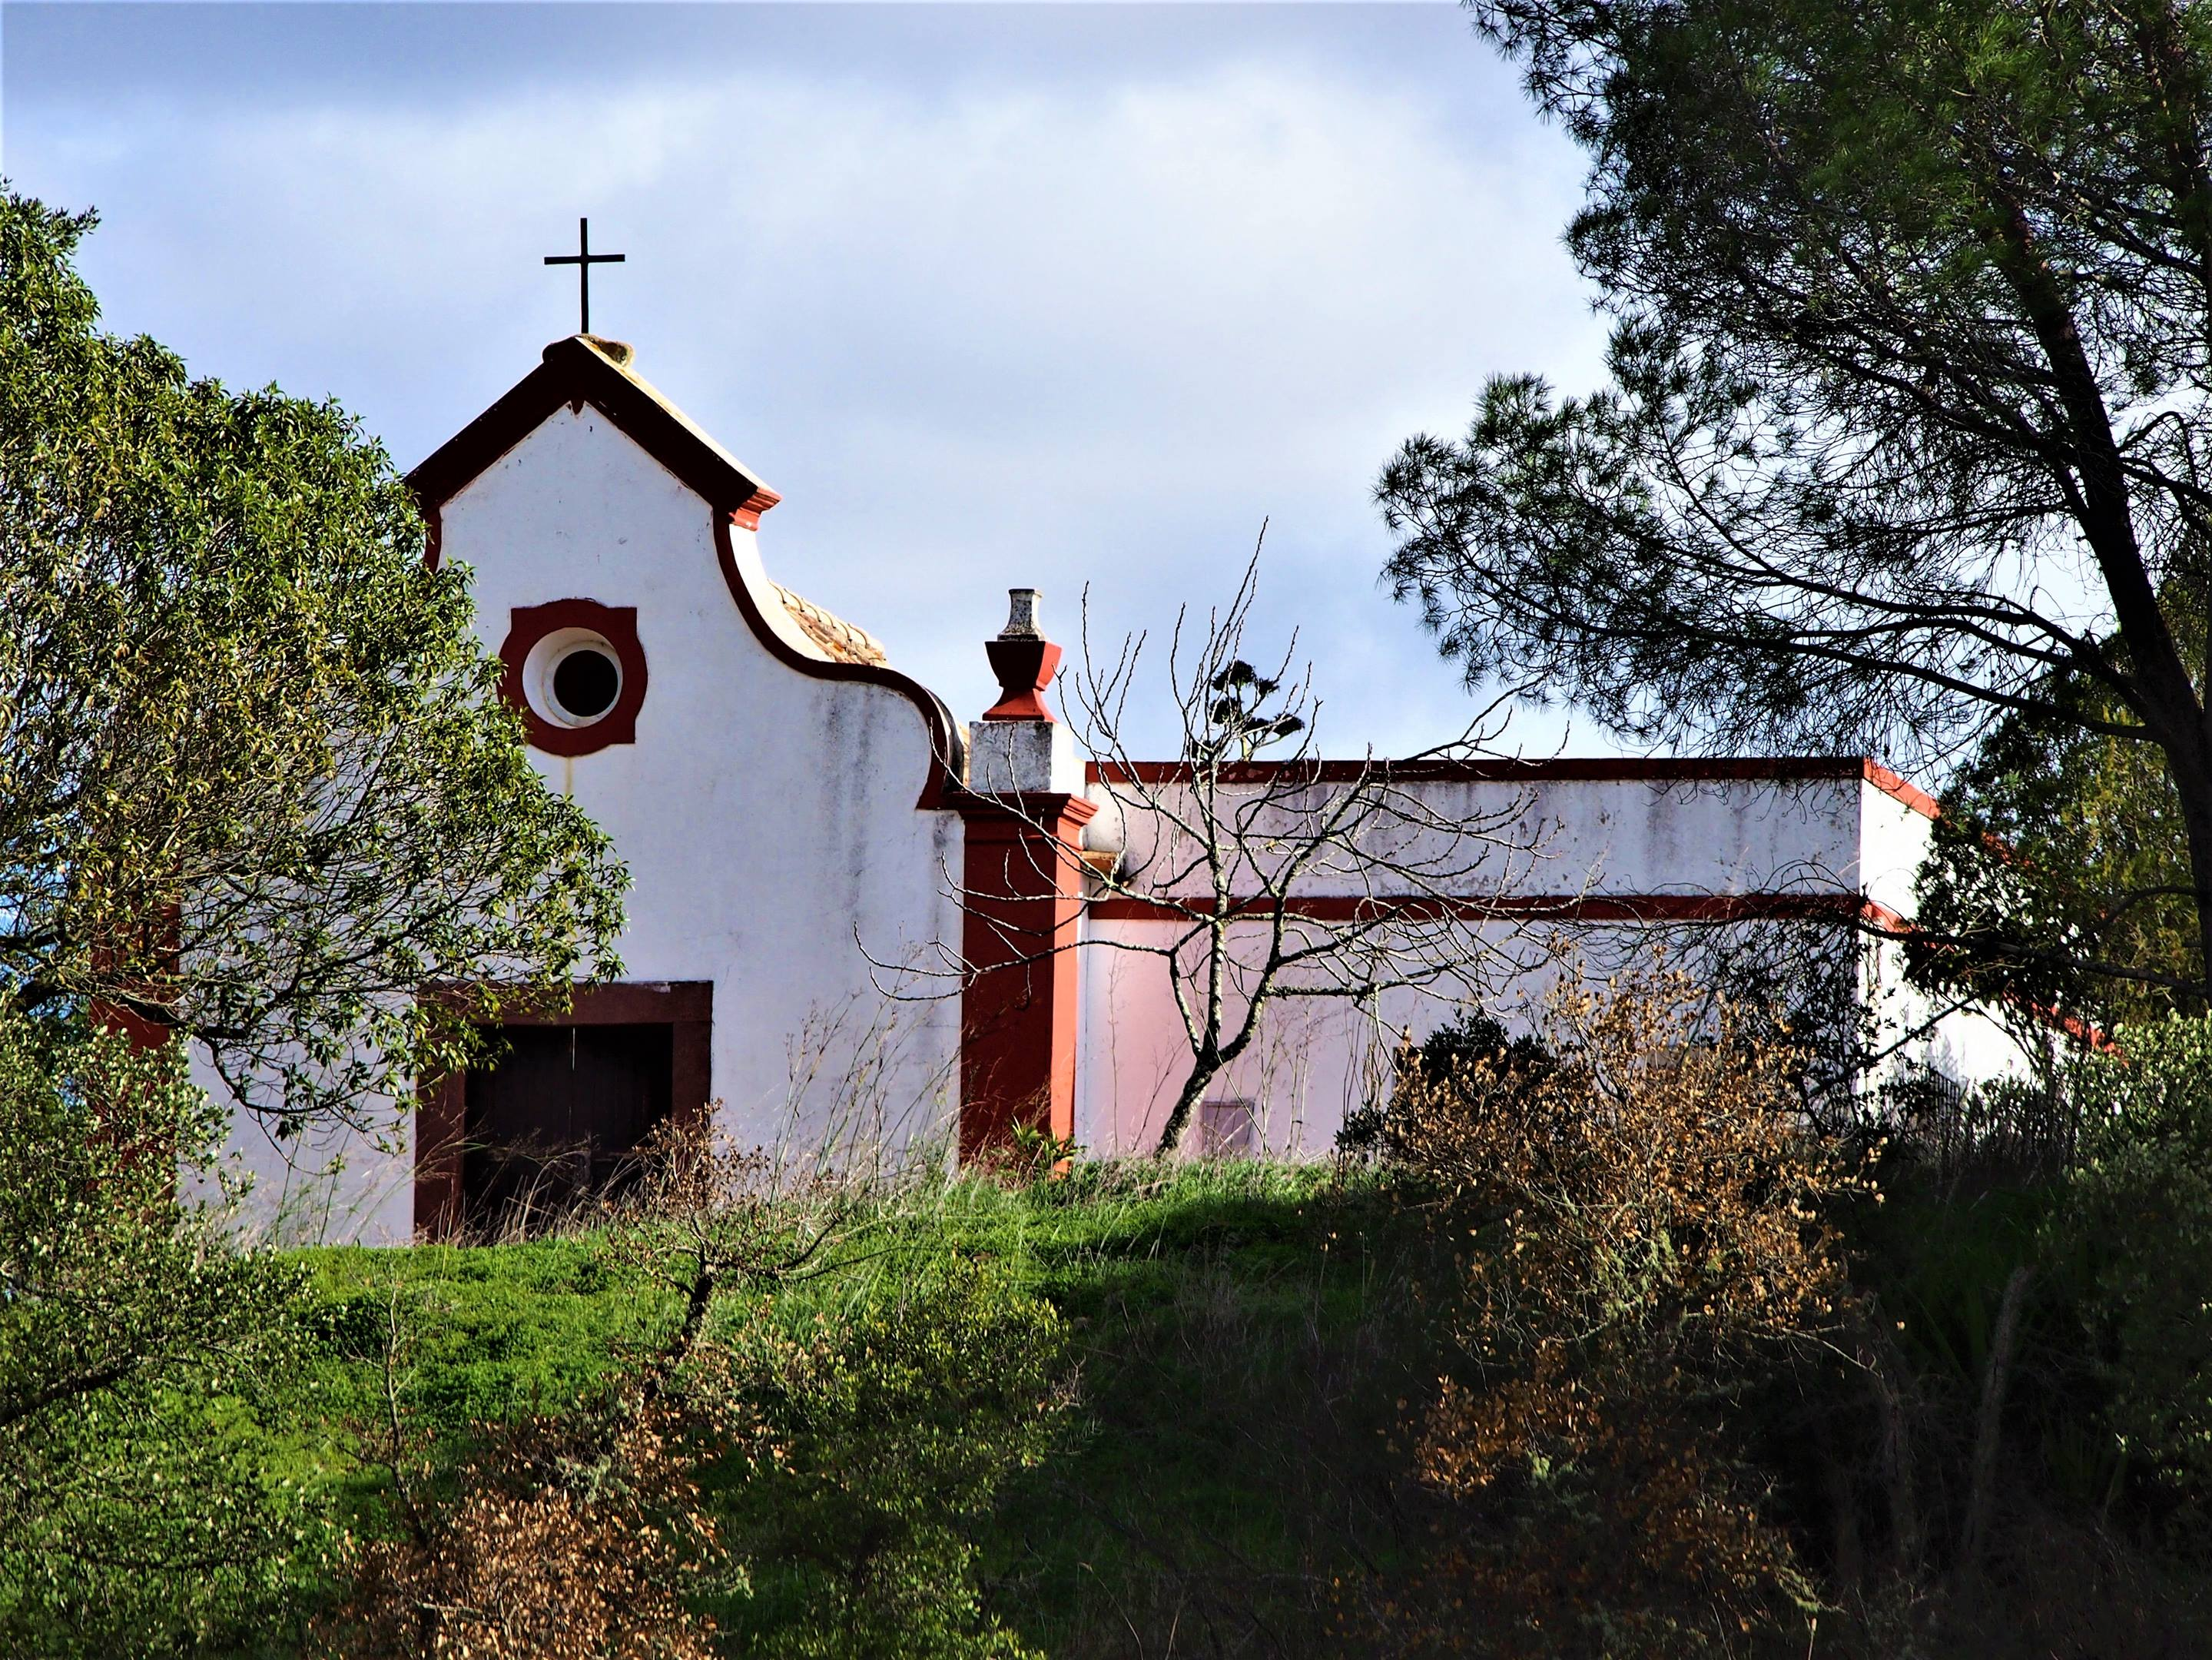 Ermida de Sant'Ana, São Bartolomeu de Messines, Algarve - located 2 km down a dirt track